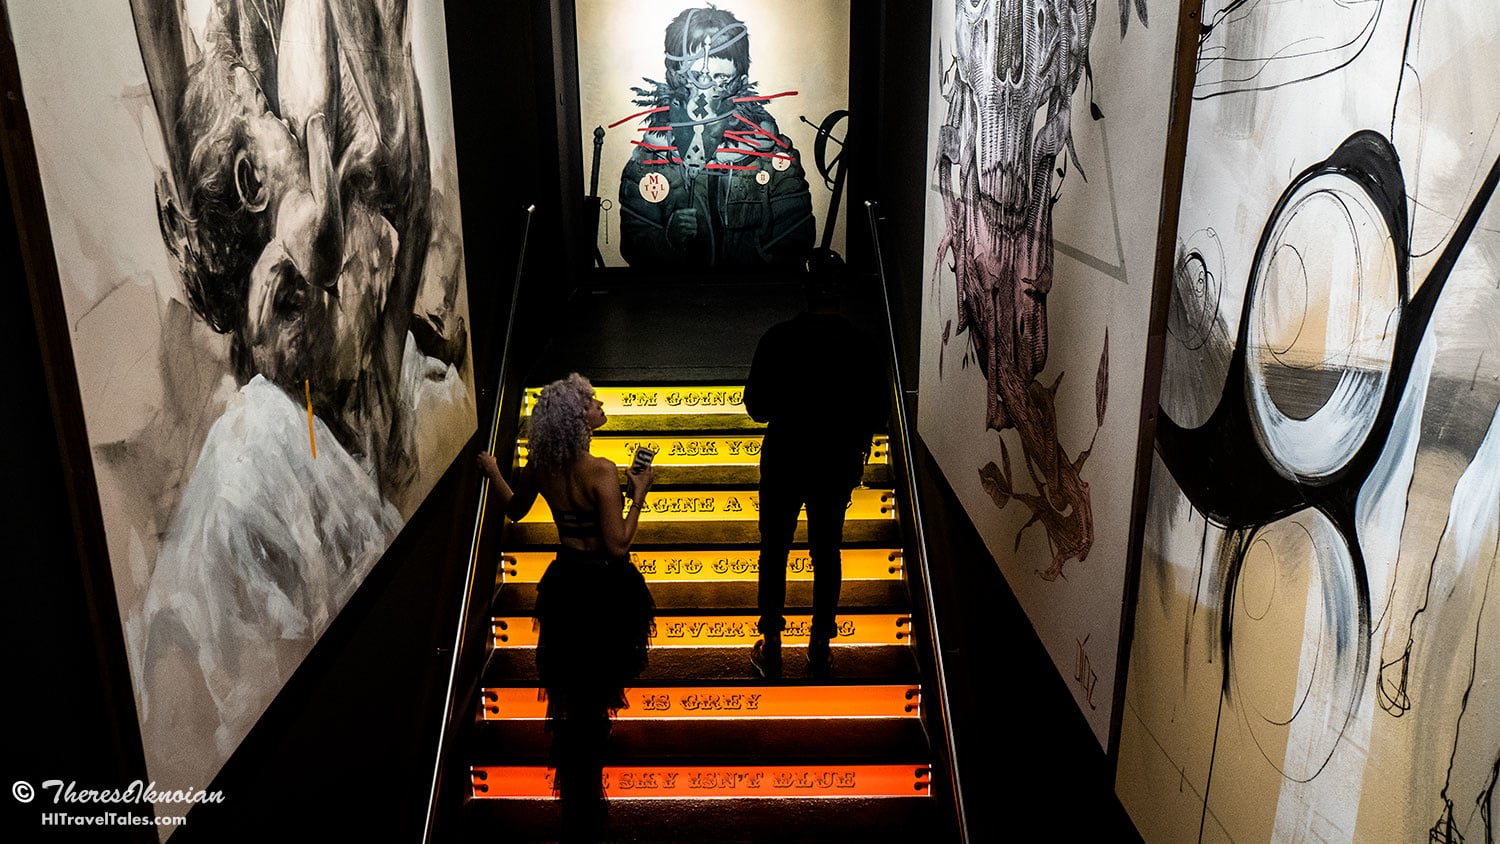 Walking up the stairs to the second floor exhibits is anything but boring ... art is everywhere!